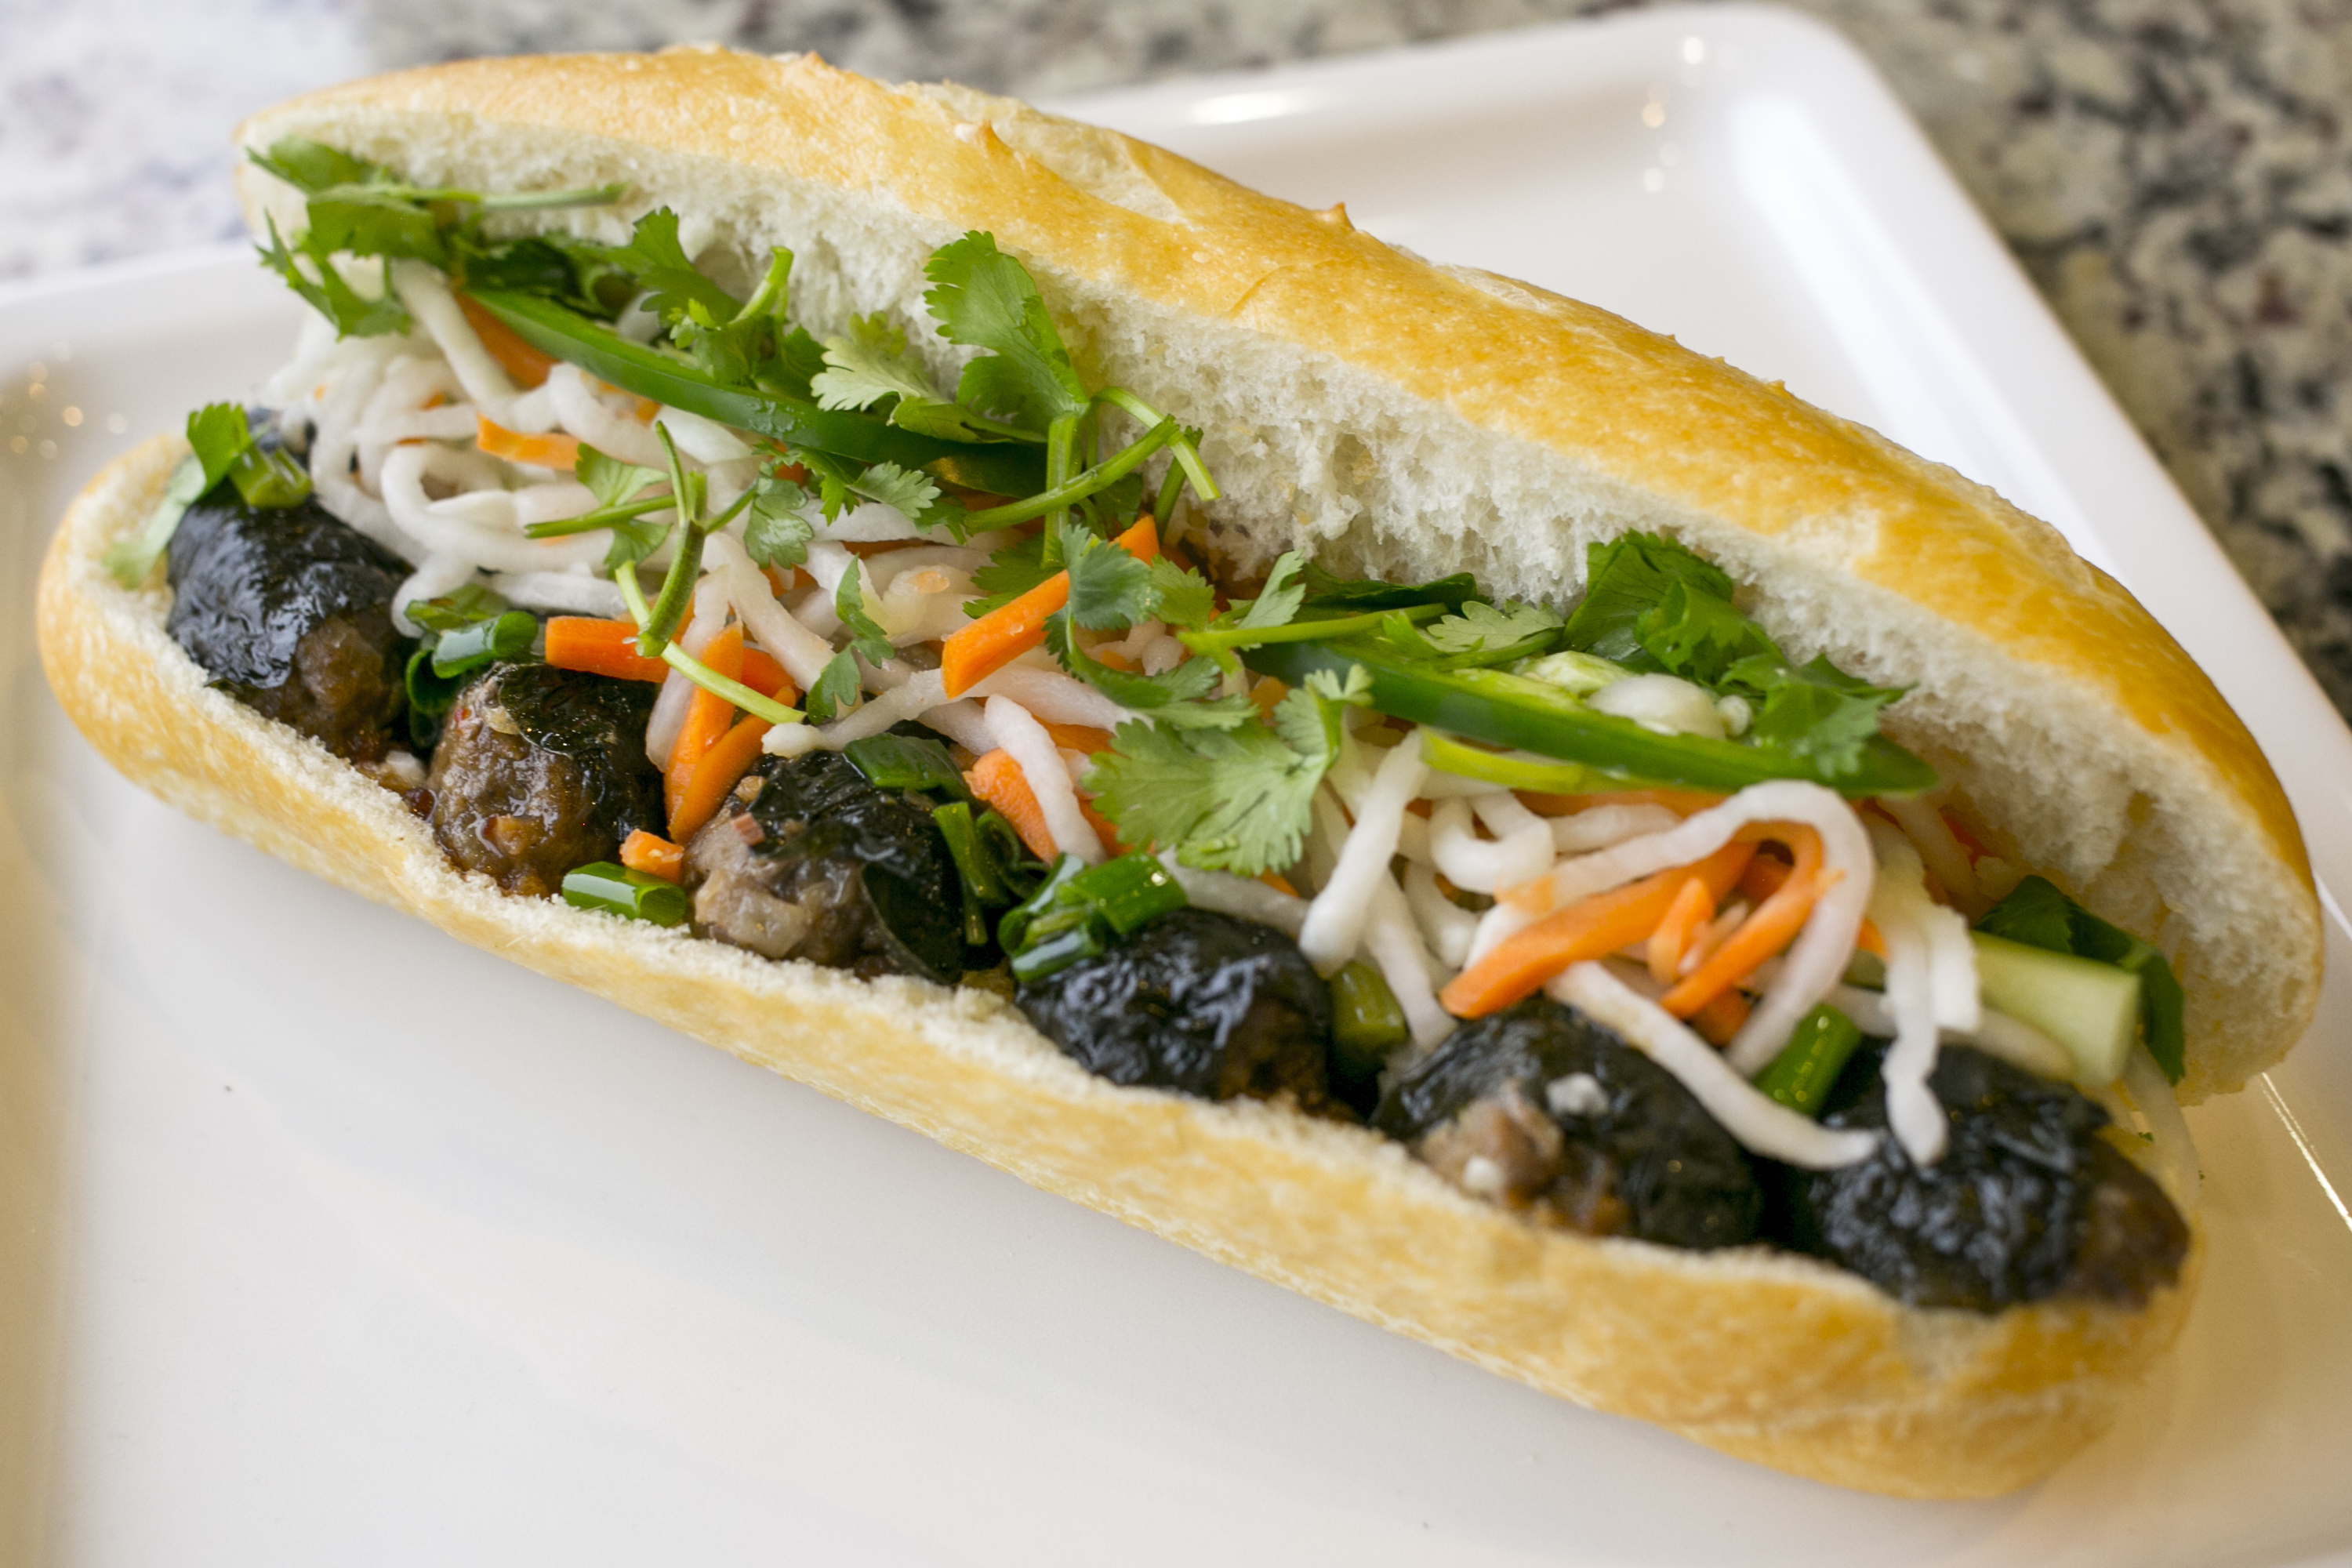 Little Saigon Baguette Bakery